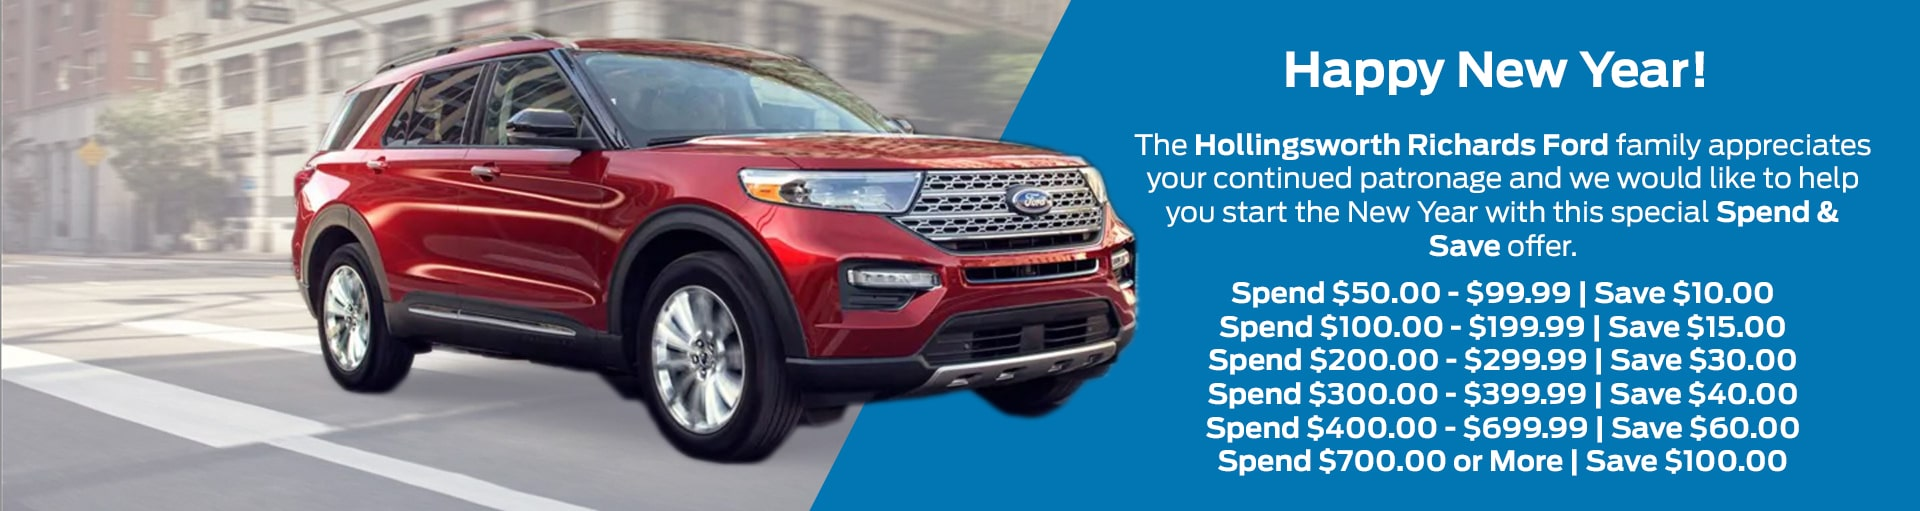 Ford Spend & Save Special Coupon